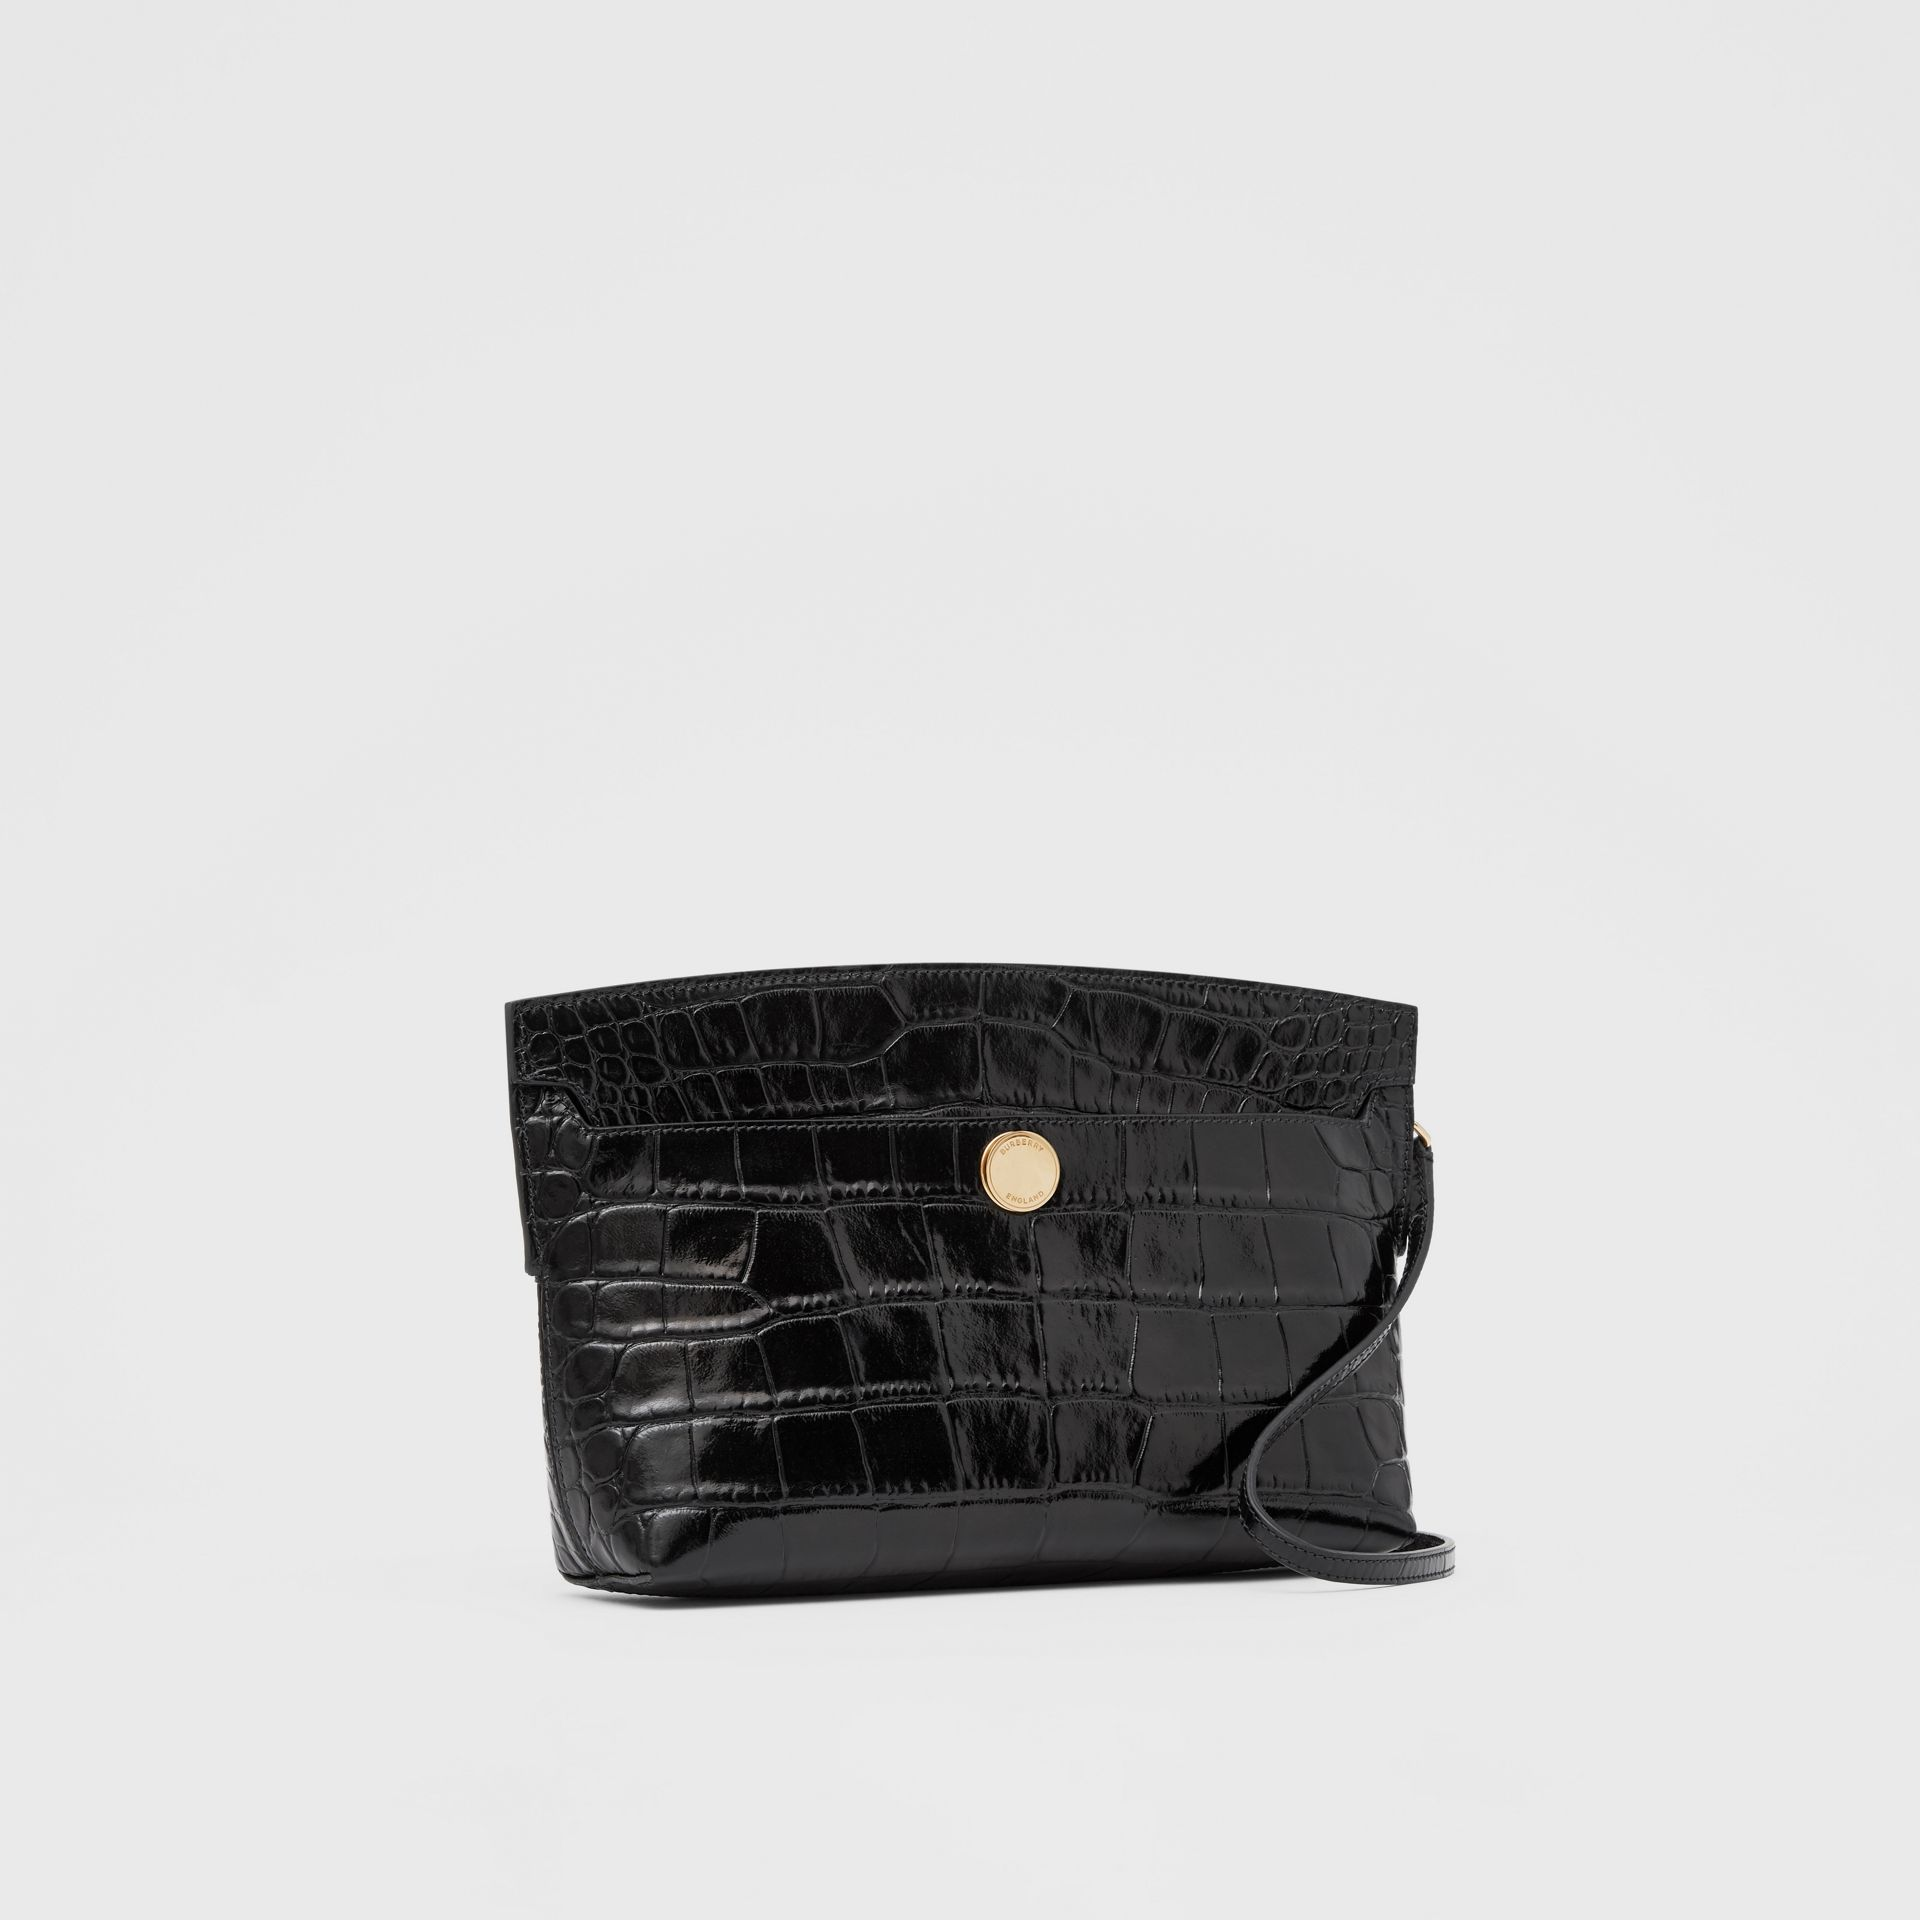 Embossed Leather Society Clutch in Black - Women | Burberry Singapore - gallery image 6